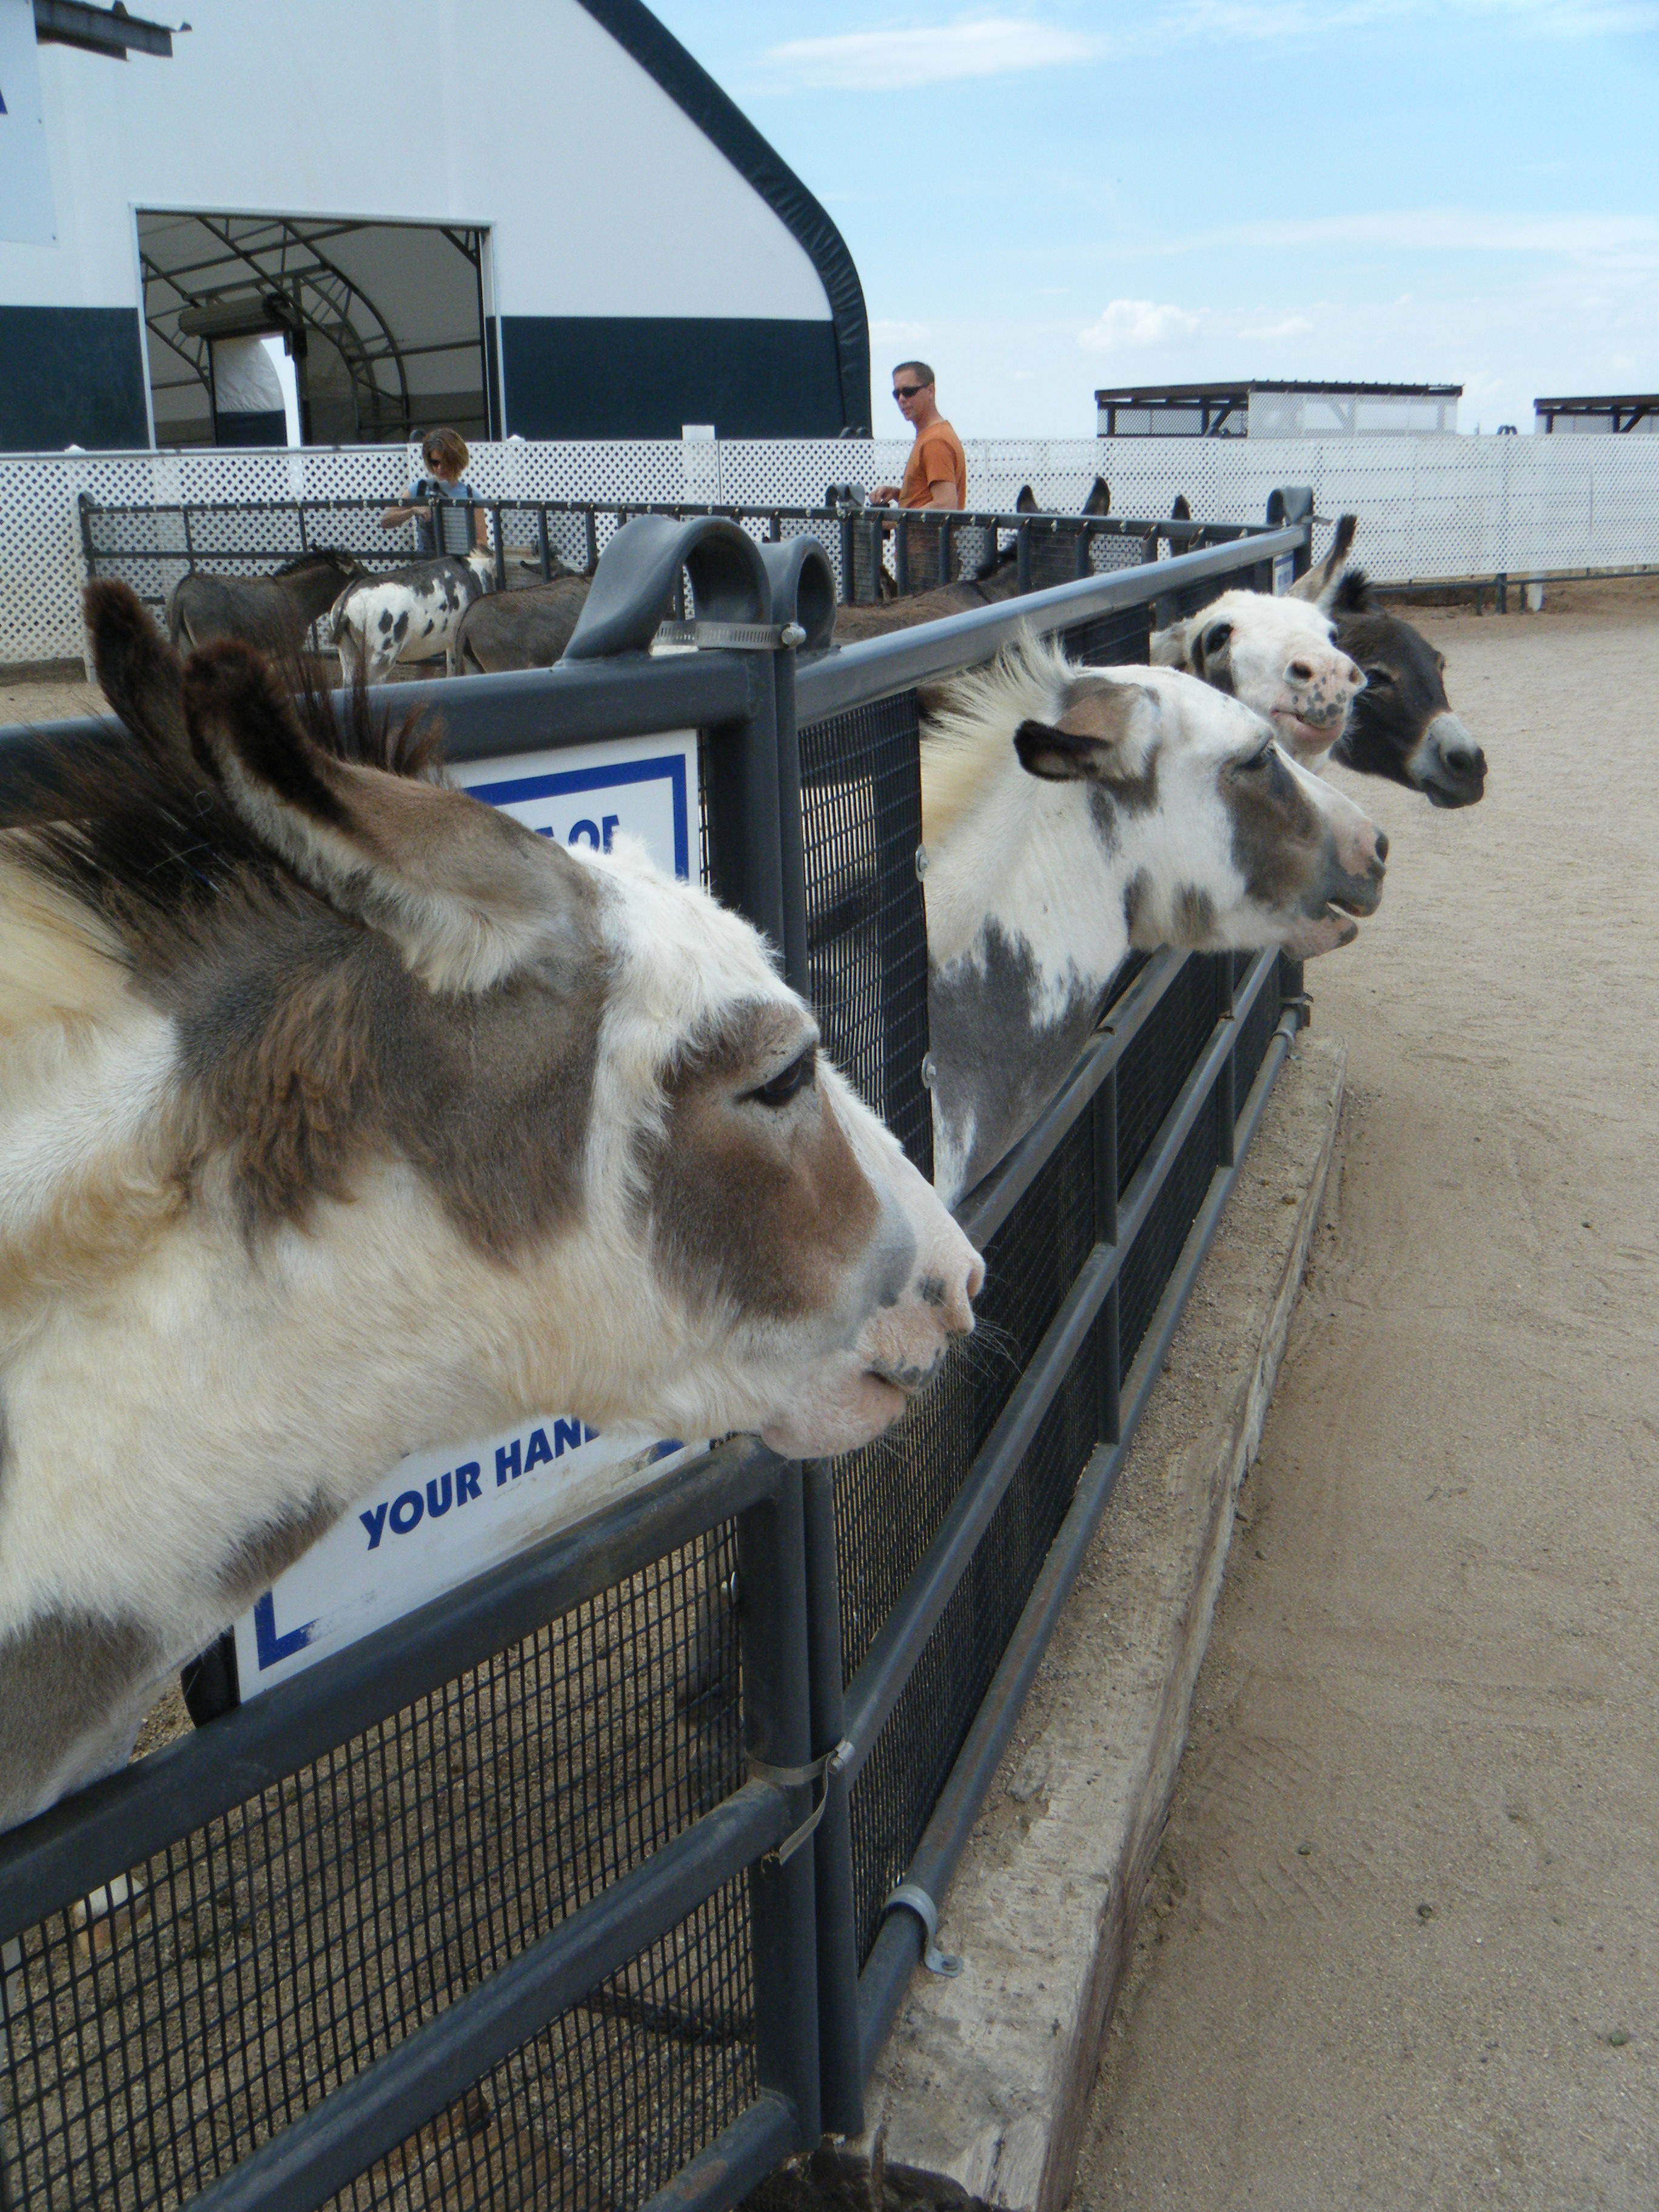 The Donkeys at Rooster Cogburns (c) AB Raschke